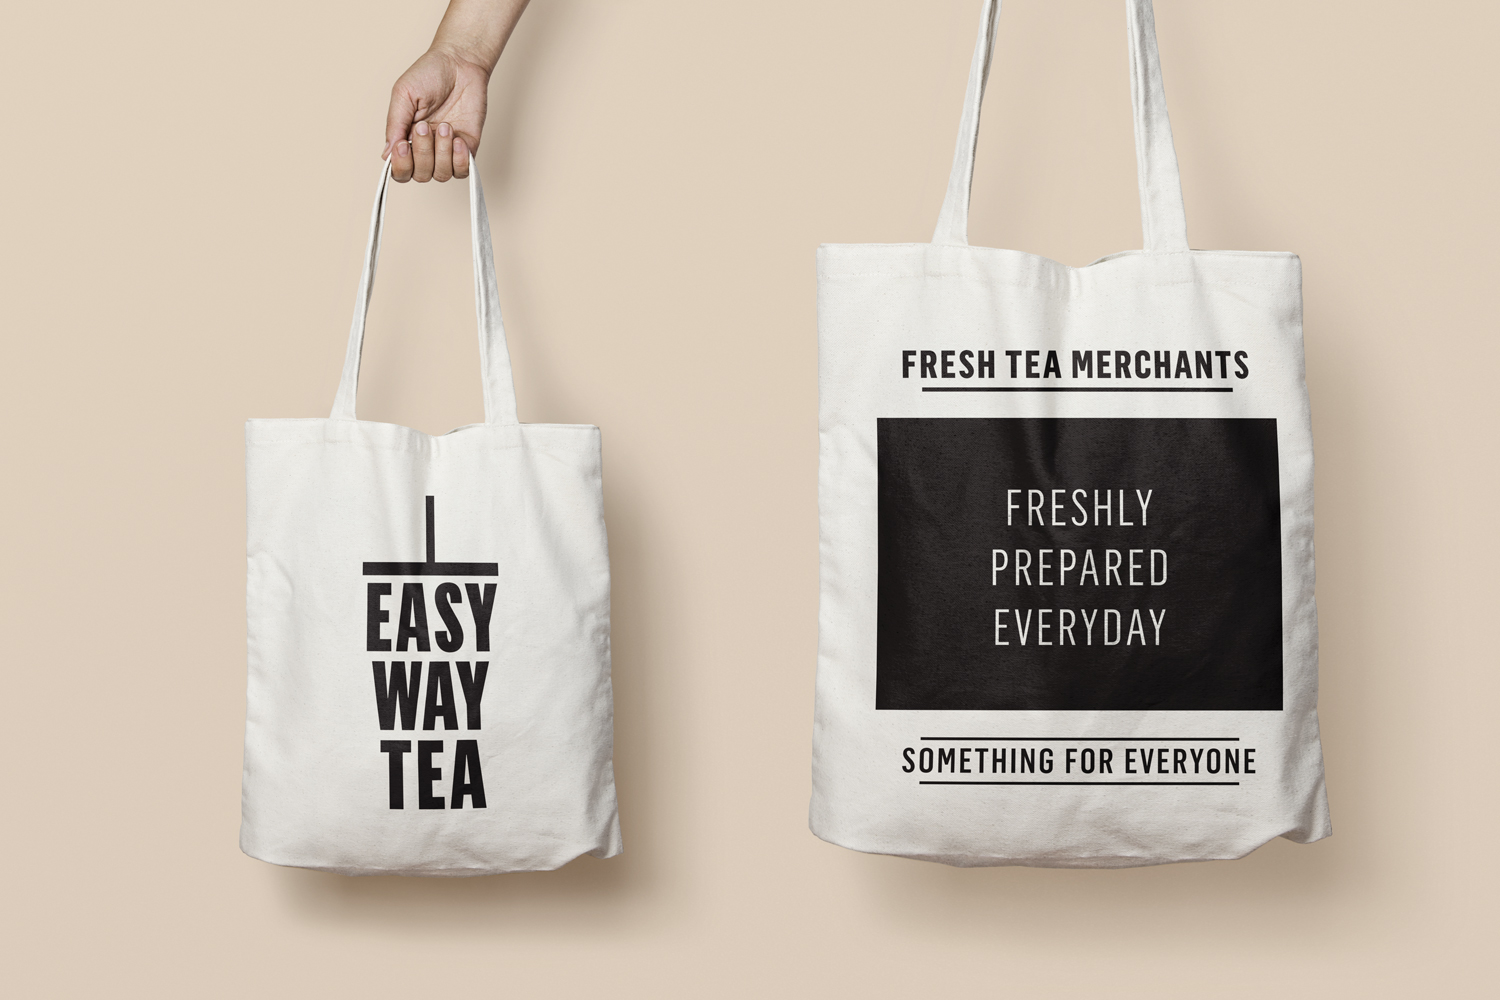 easy-way-tea-11-tote-bags